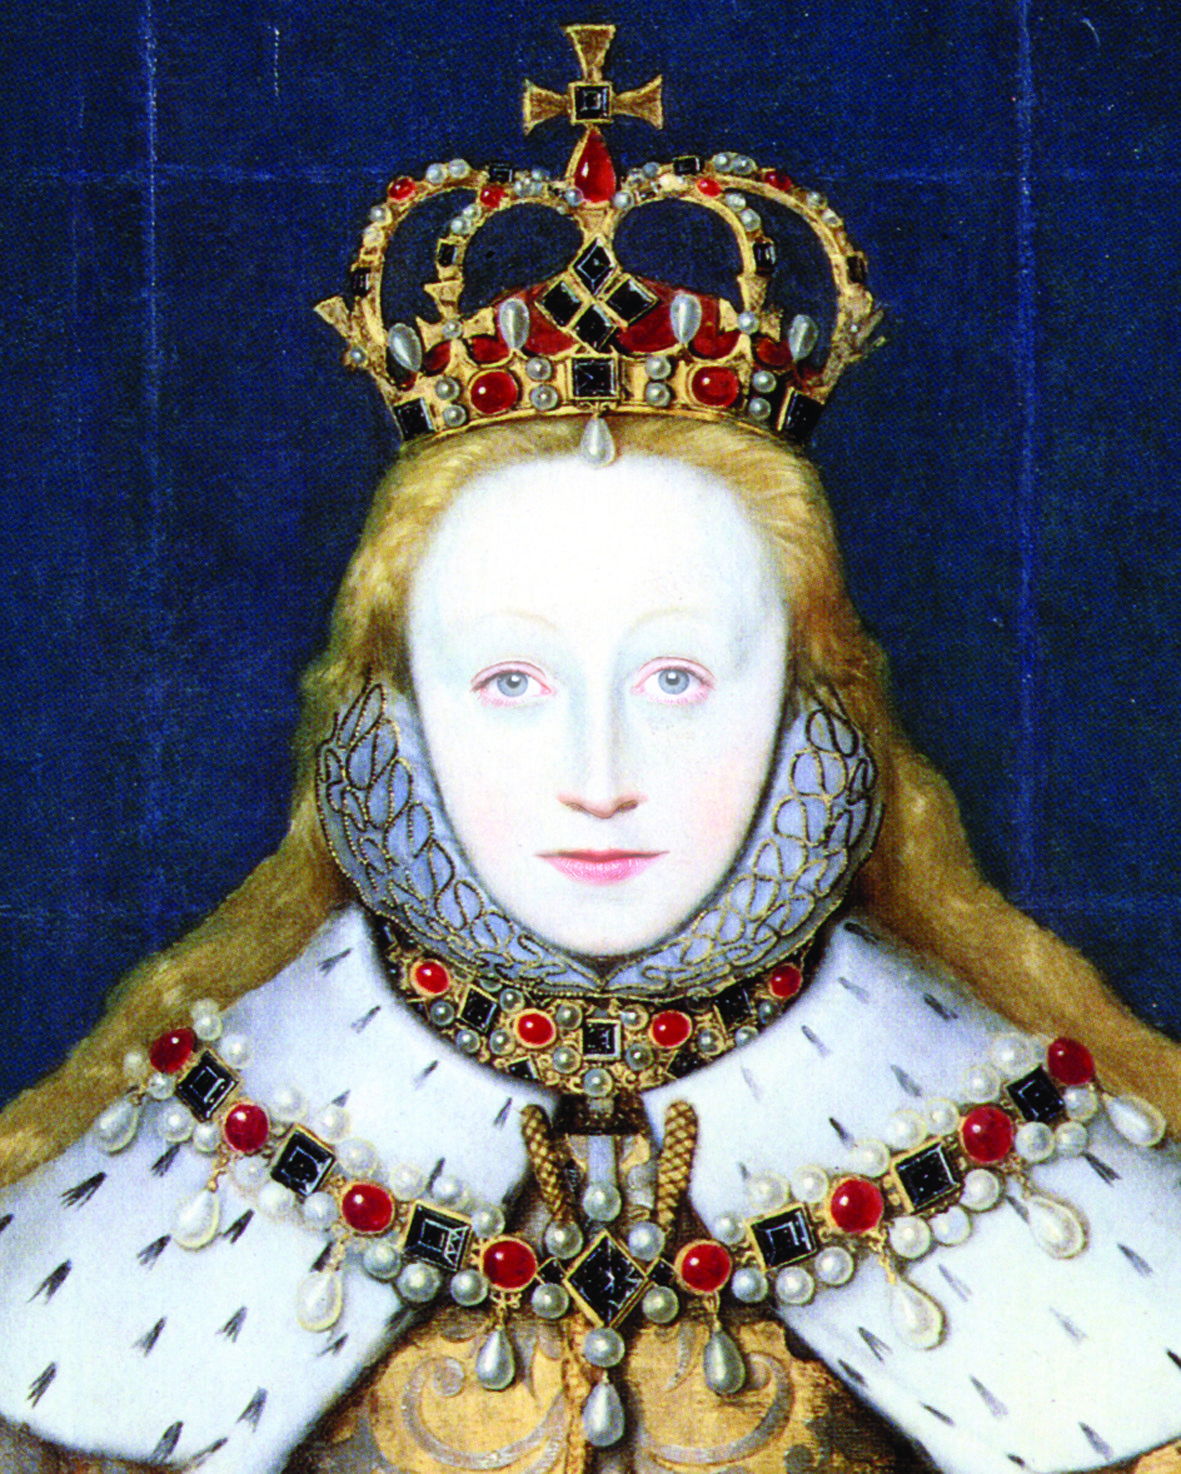 Young Elizabeth Elizabeth I in her coronation robes